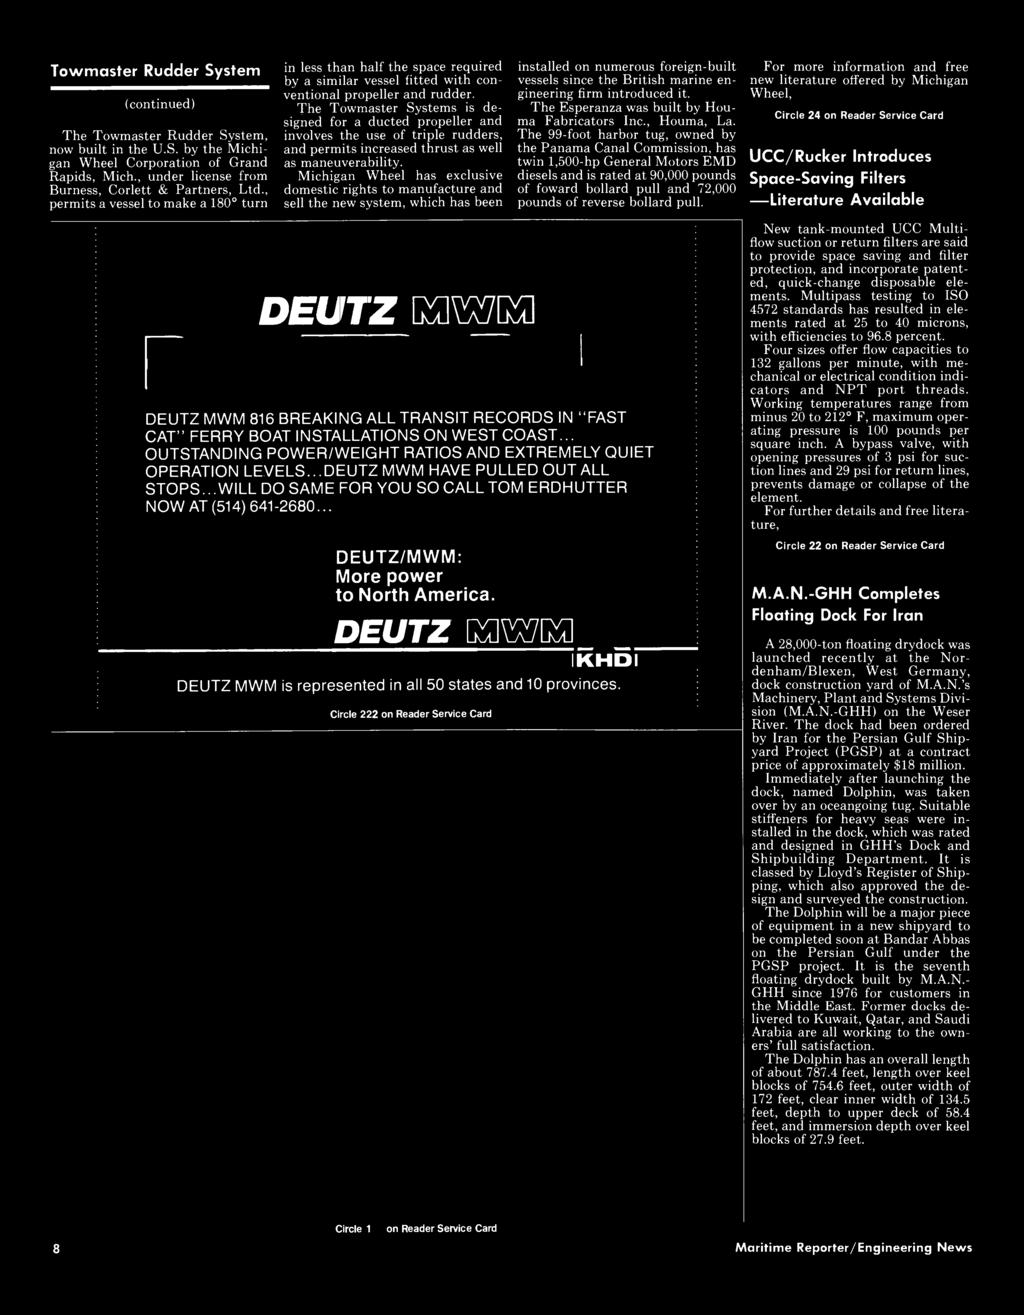 MARITIME REPORTER AND ENGINEERING NEWS JANUARY 1,1986 ISSUE - PDF